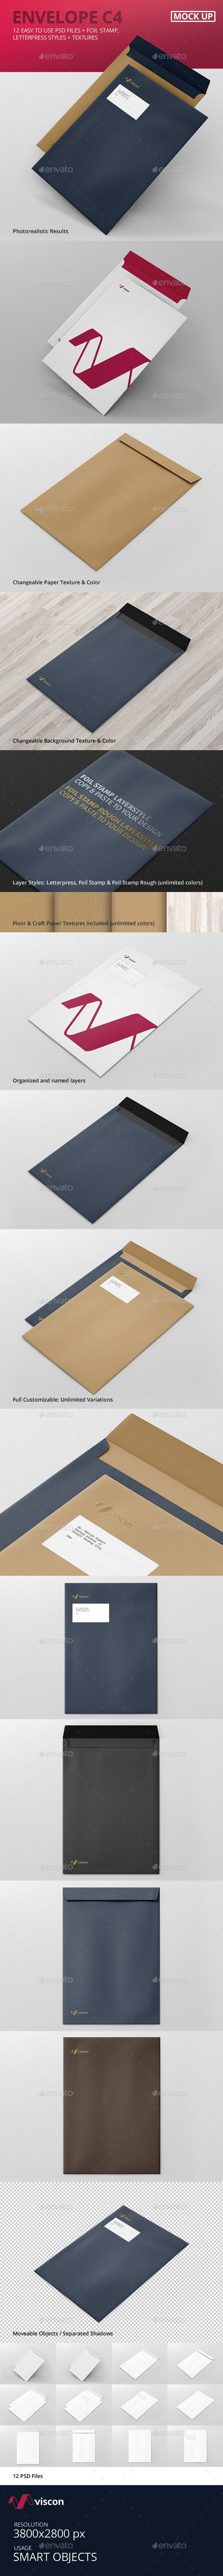 Comfortable 1 Page Resumes Examples Big 100th Day Hat Template Rectangular 1099 Int Template 11 Vuze Search Templates Youthful 12 Hour Schedule Template Orange14 Year Old Resumes Envelope C4 Mock Ups (Stationery) | Print..